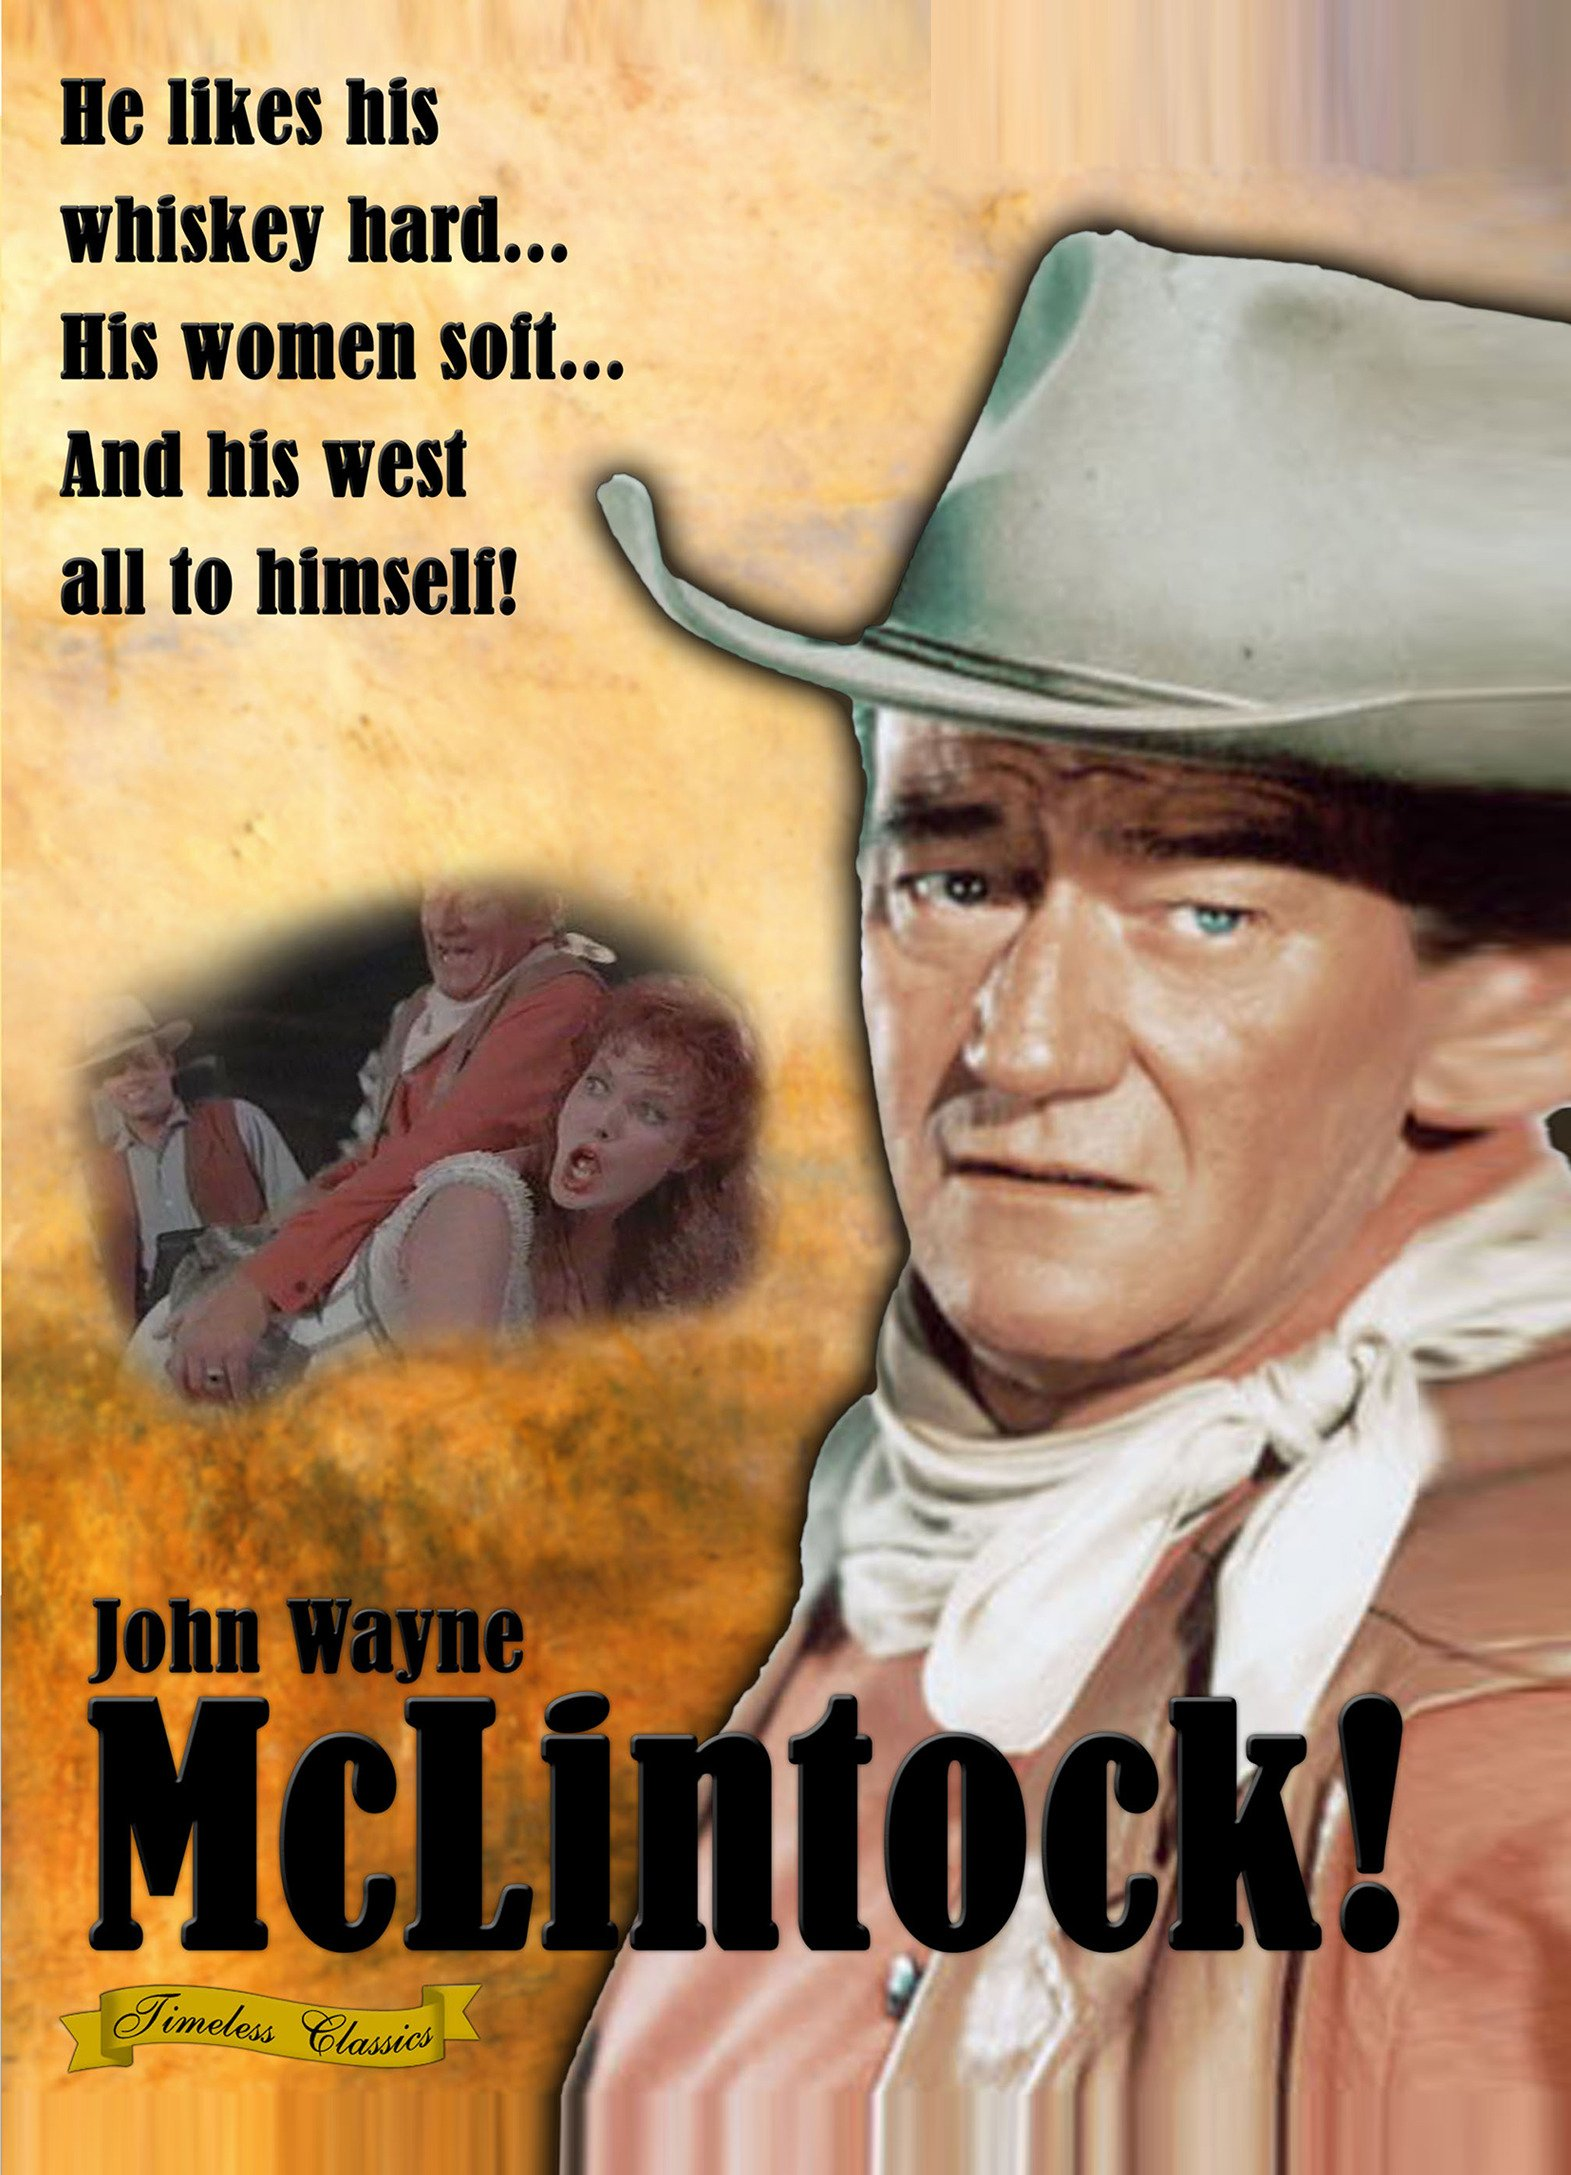 McLintock! (1963) on Amazon Prime Video UK